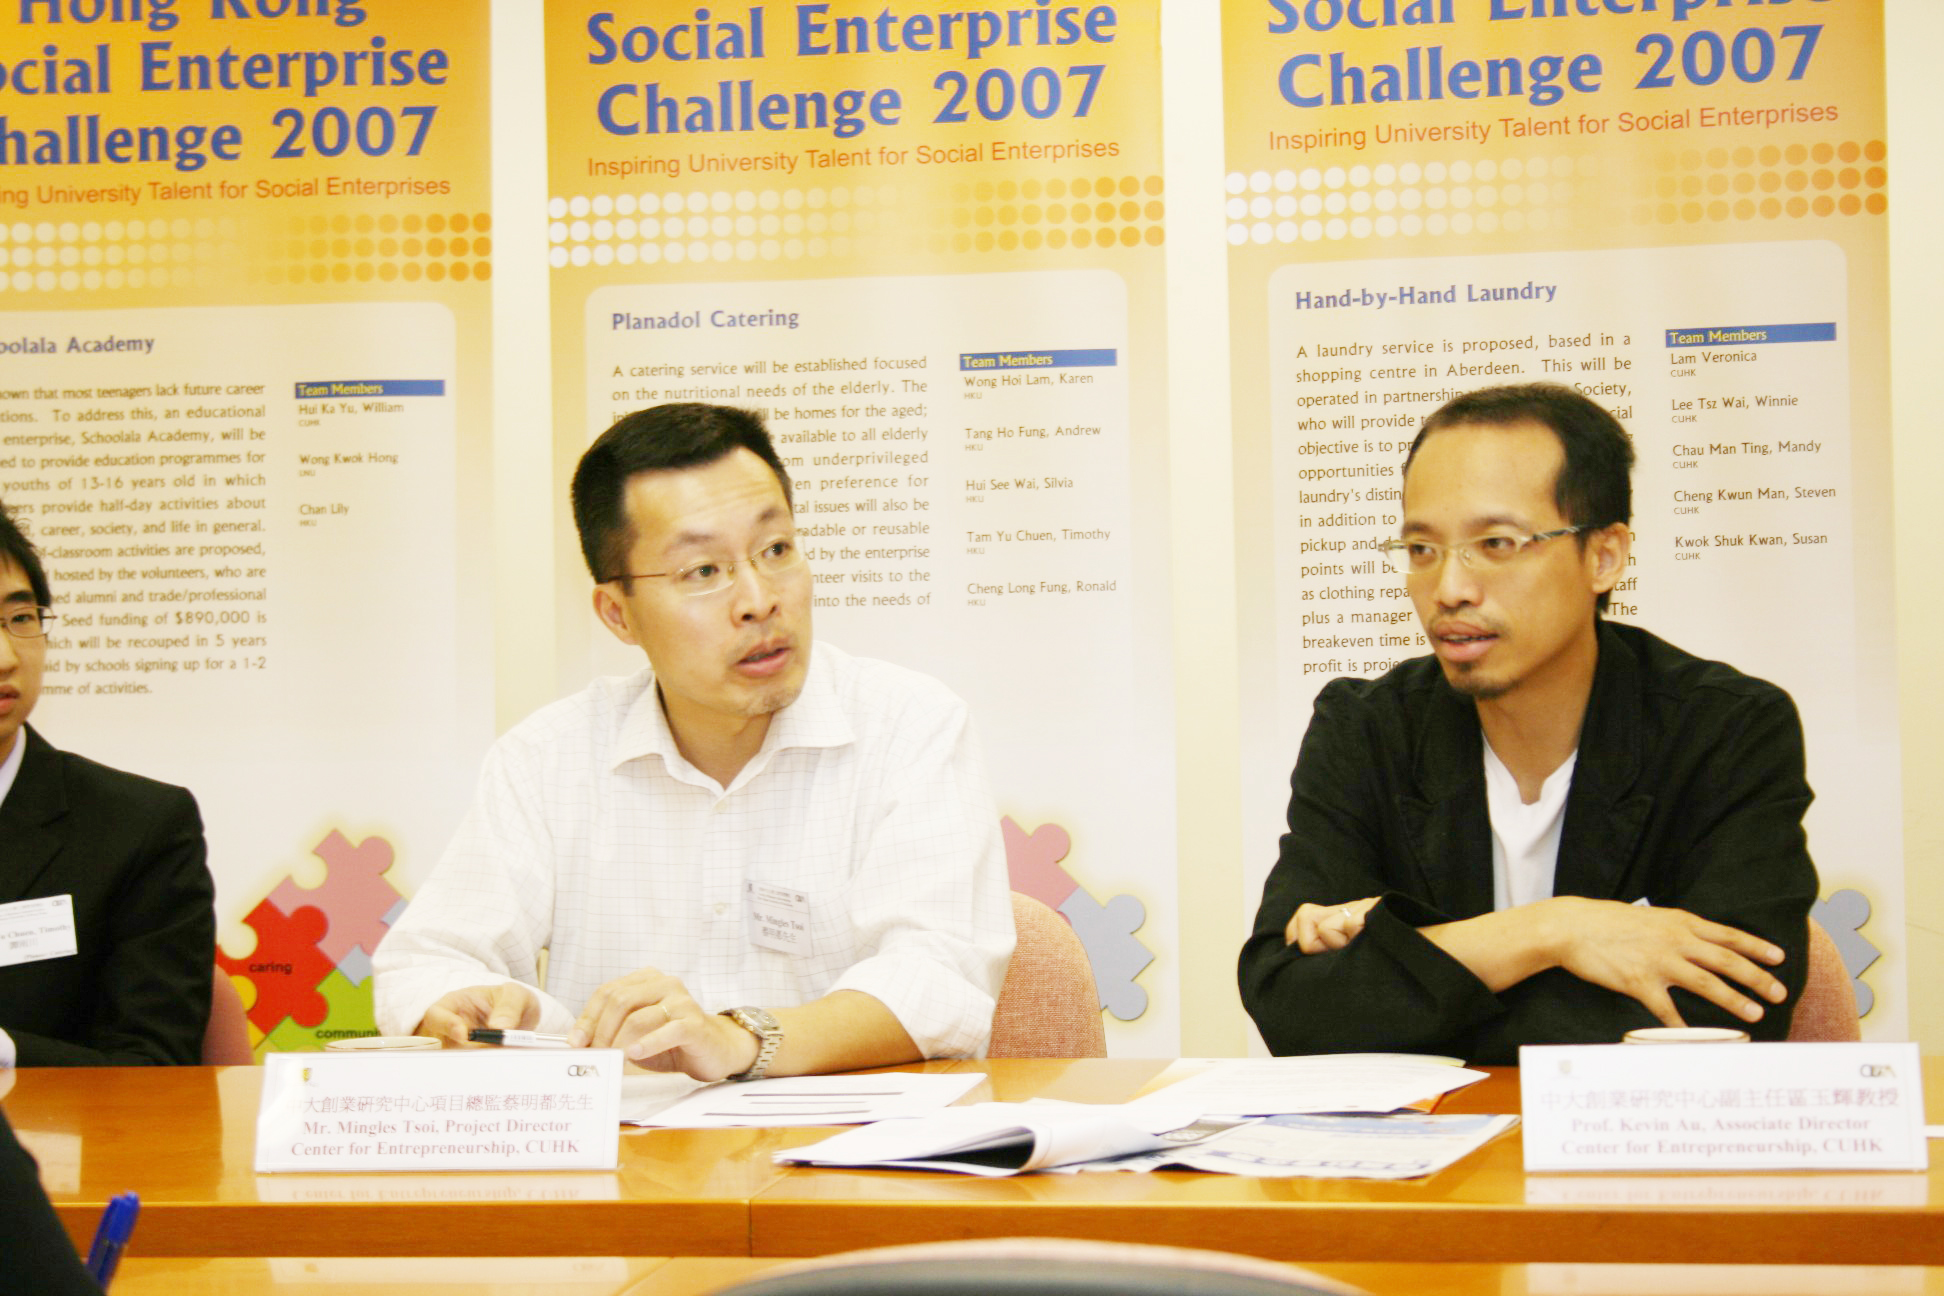 From left: Mr. Mingles Tsoi, Project Director, and Prof. Kevin Au, Associate Director from the CUHK's Center for Entrepreneurship.